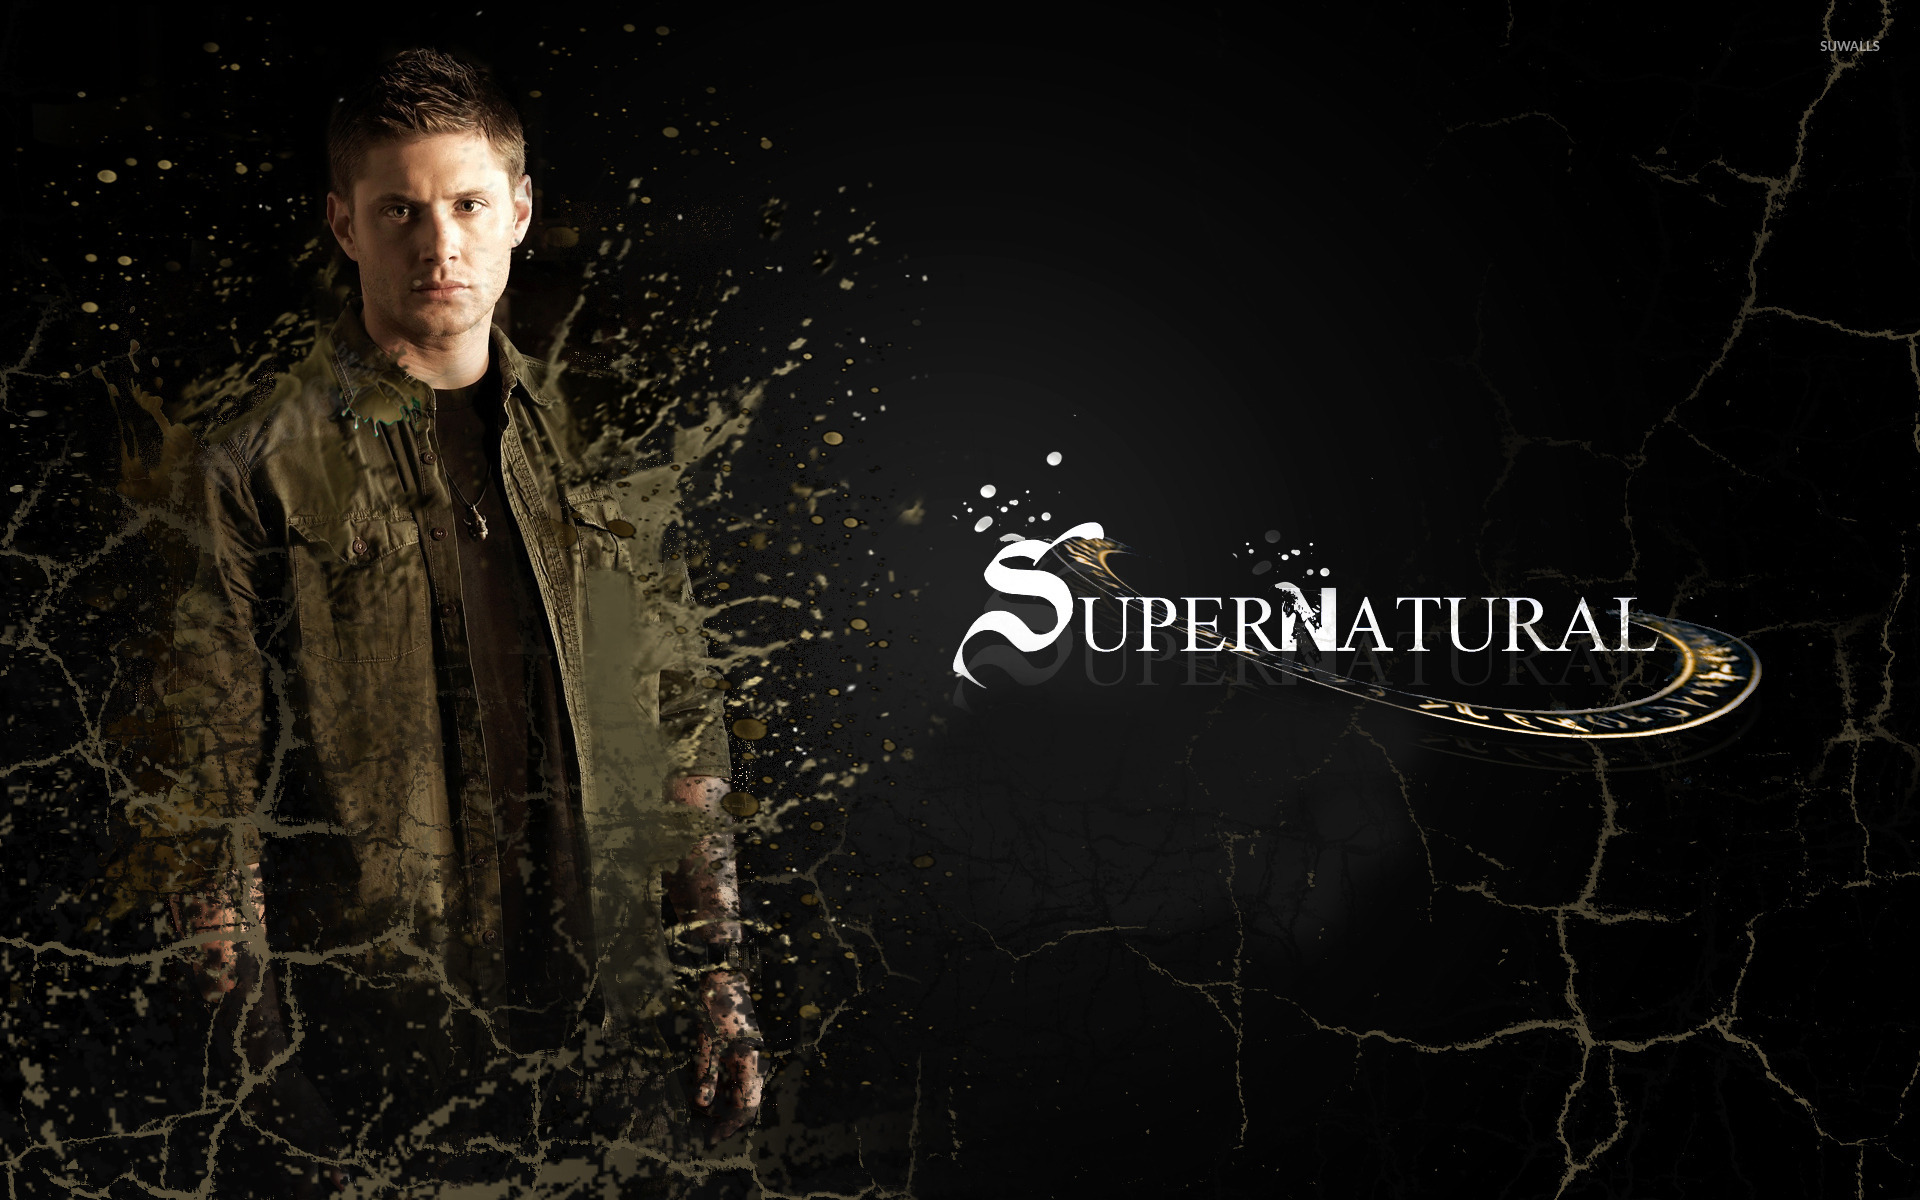 Supernatural [9] wallpaper - TV Show wallpapers - #14972